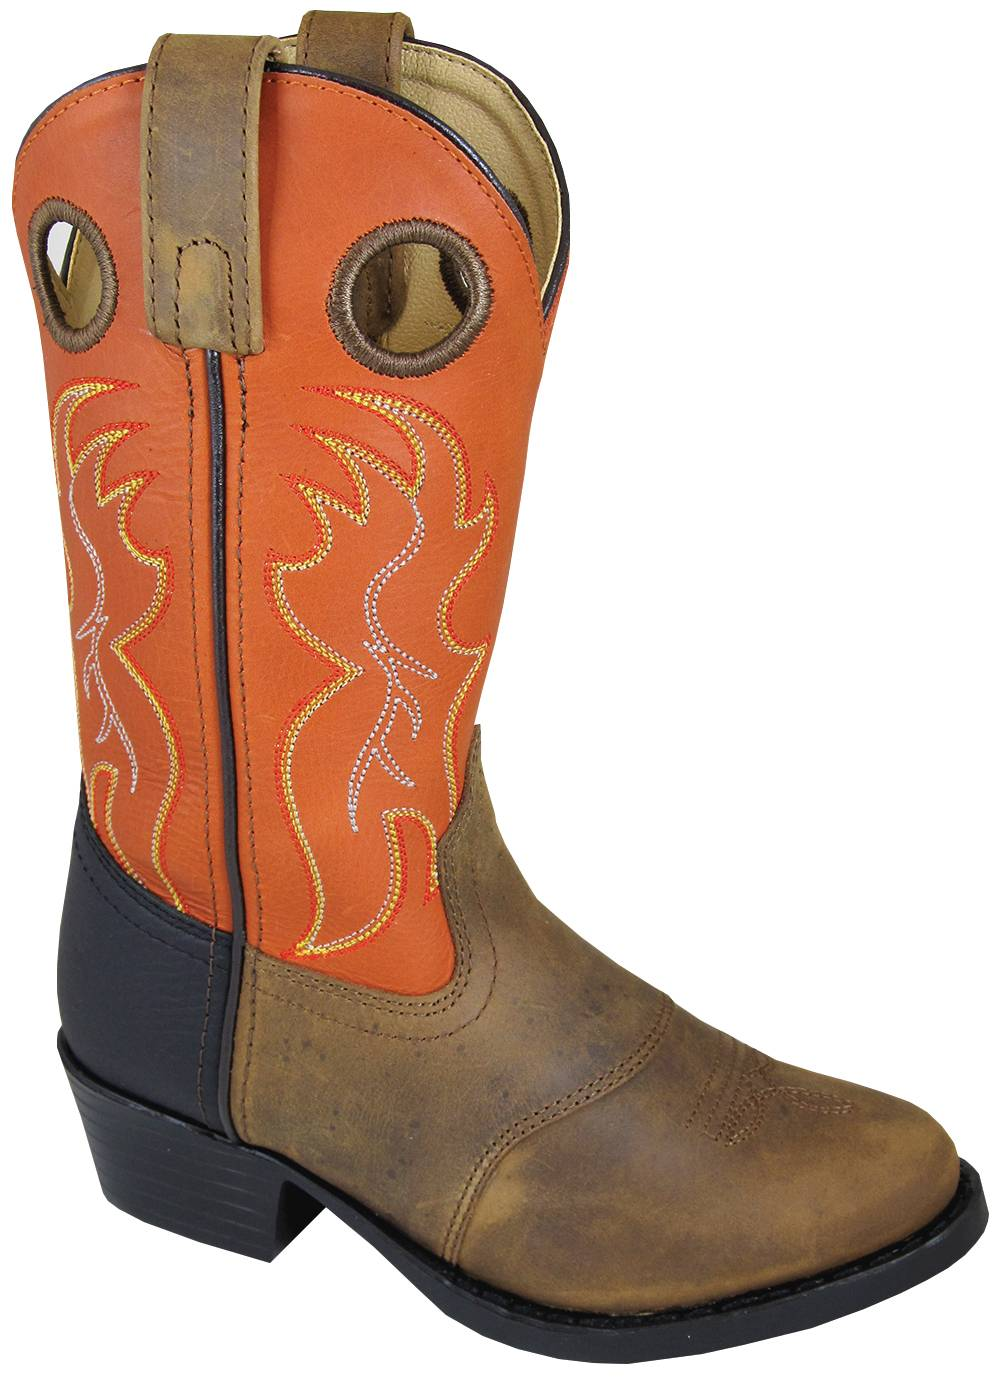 Smoky Mountain Thomas Boots - Children's - Brown/Orange